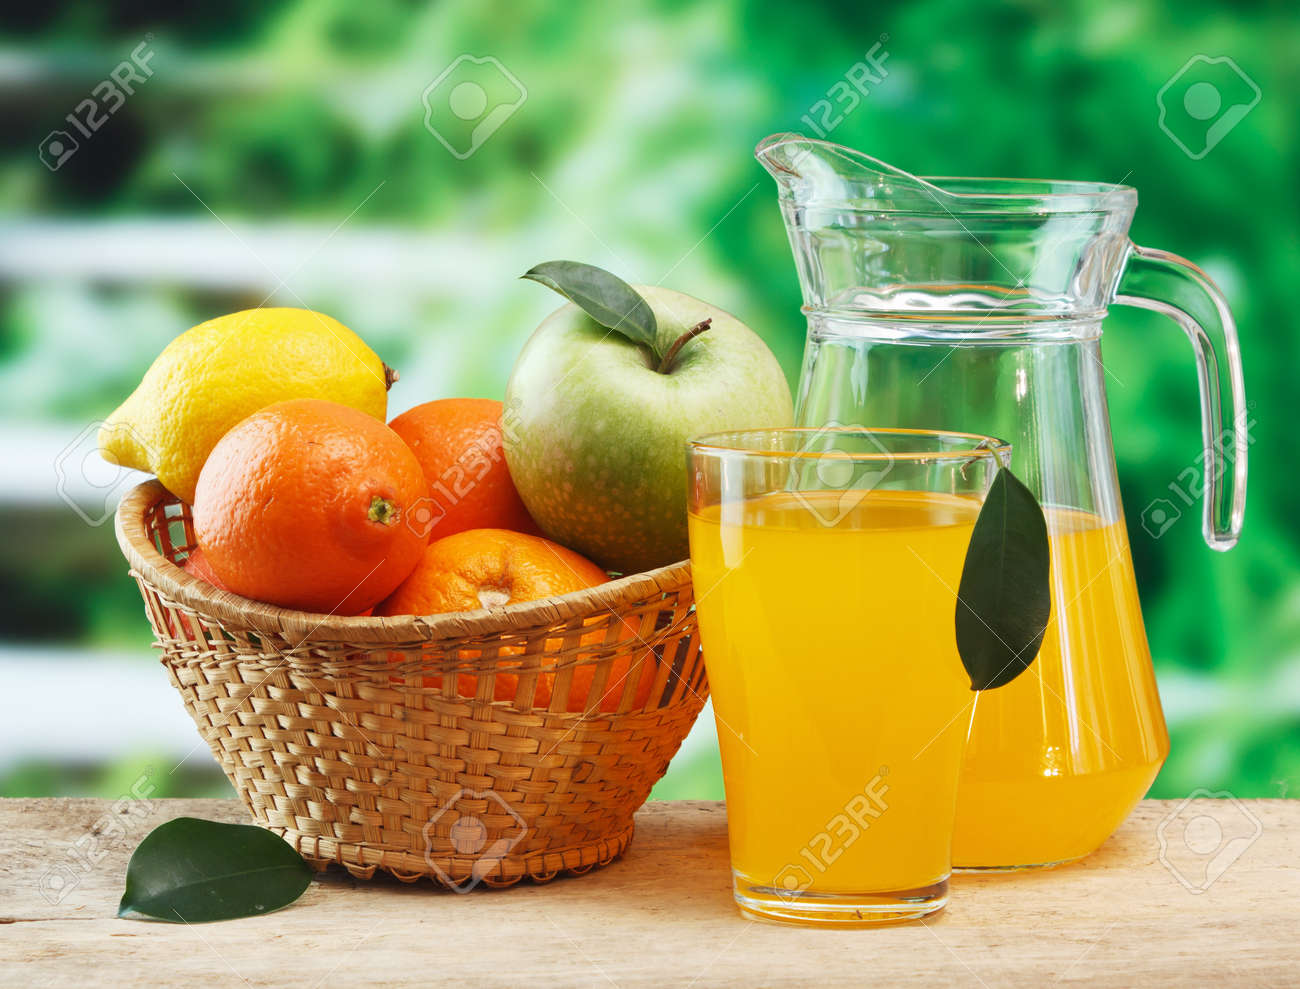 variety of fruit and juice on a wooden table in the garden - 15229454